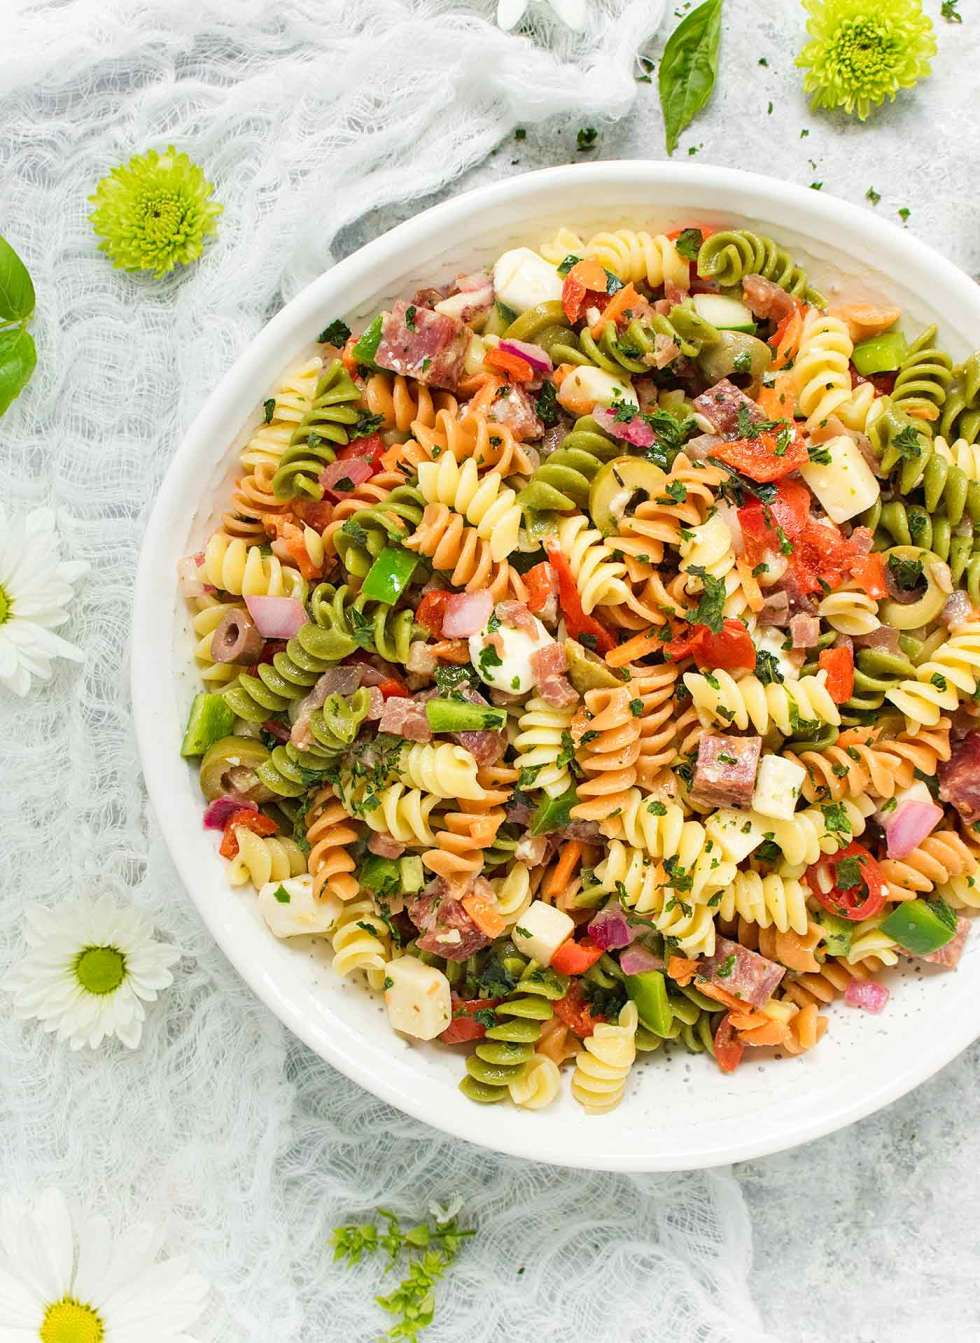 Italian Pasta Salad in a large white bowl